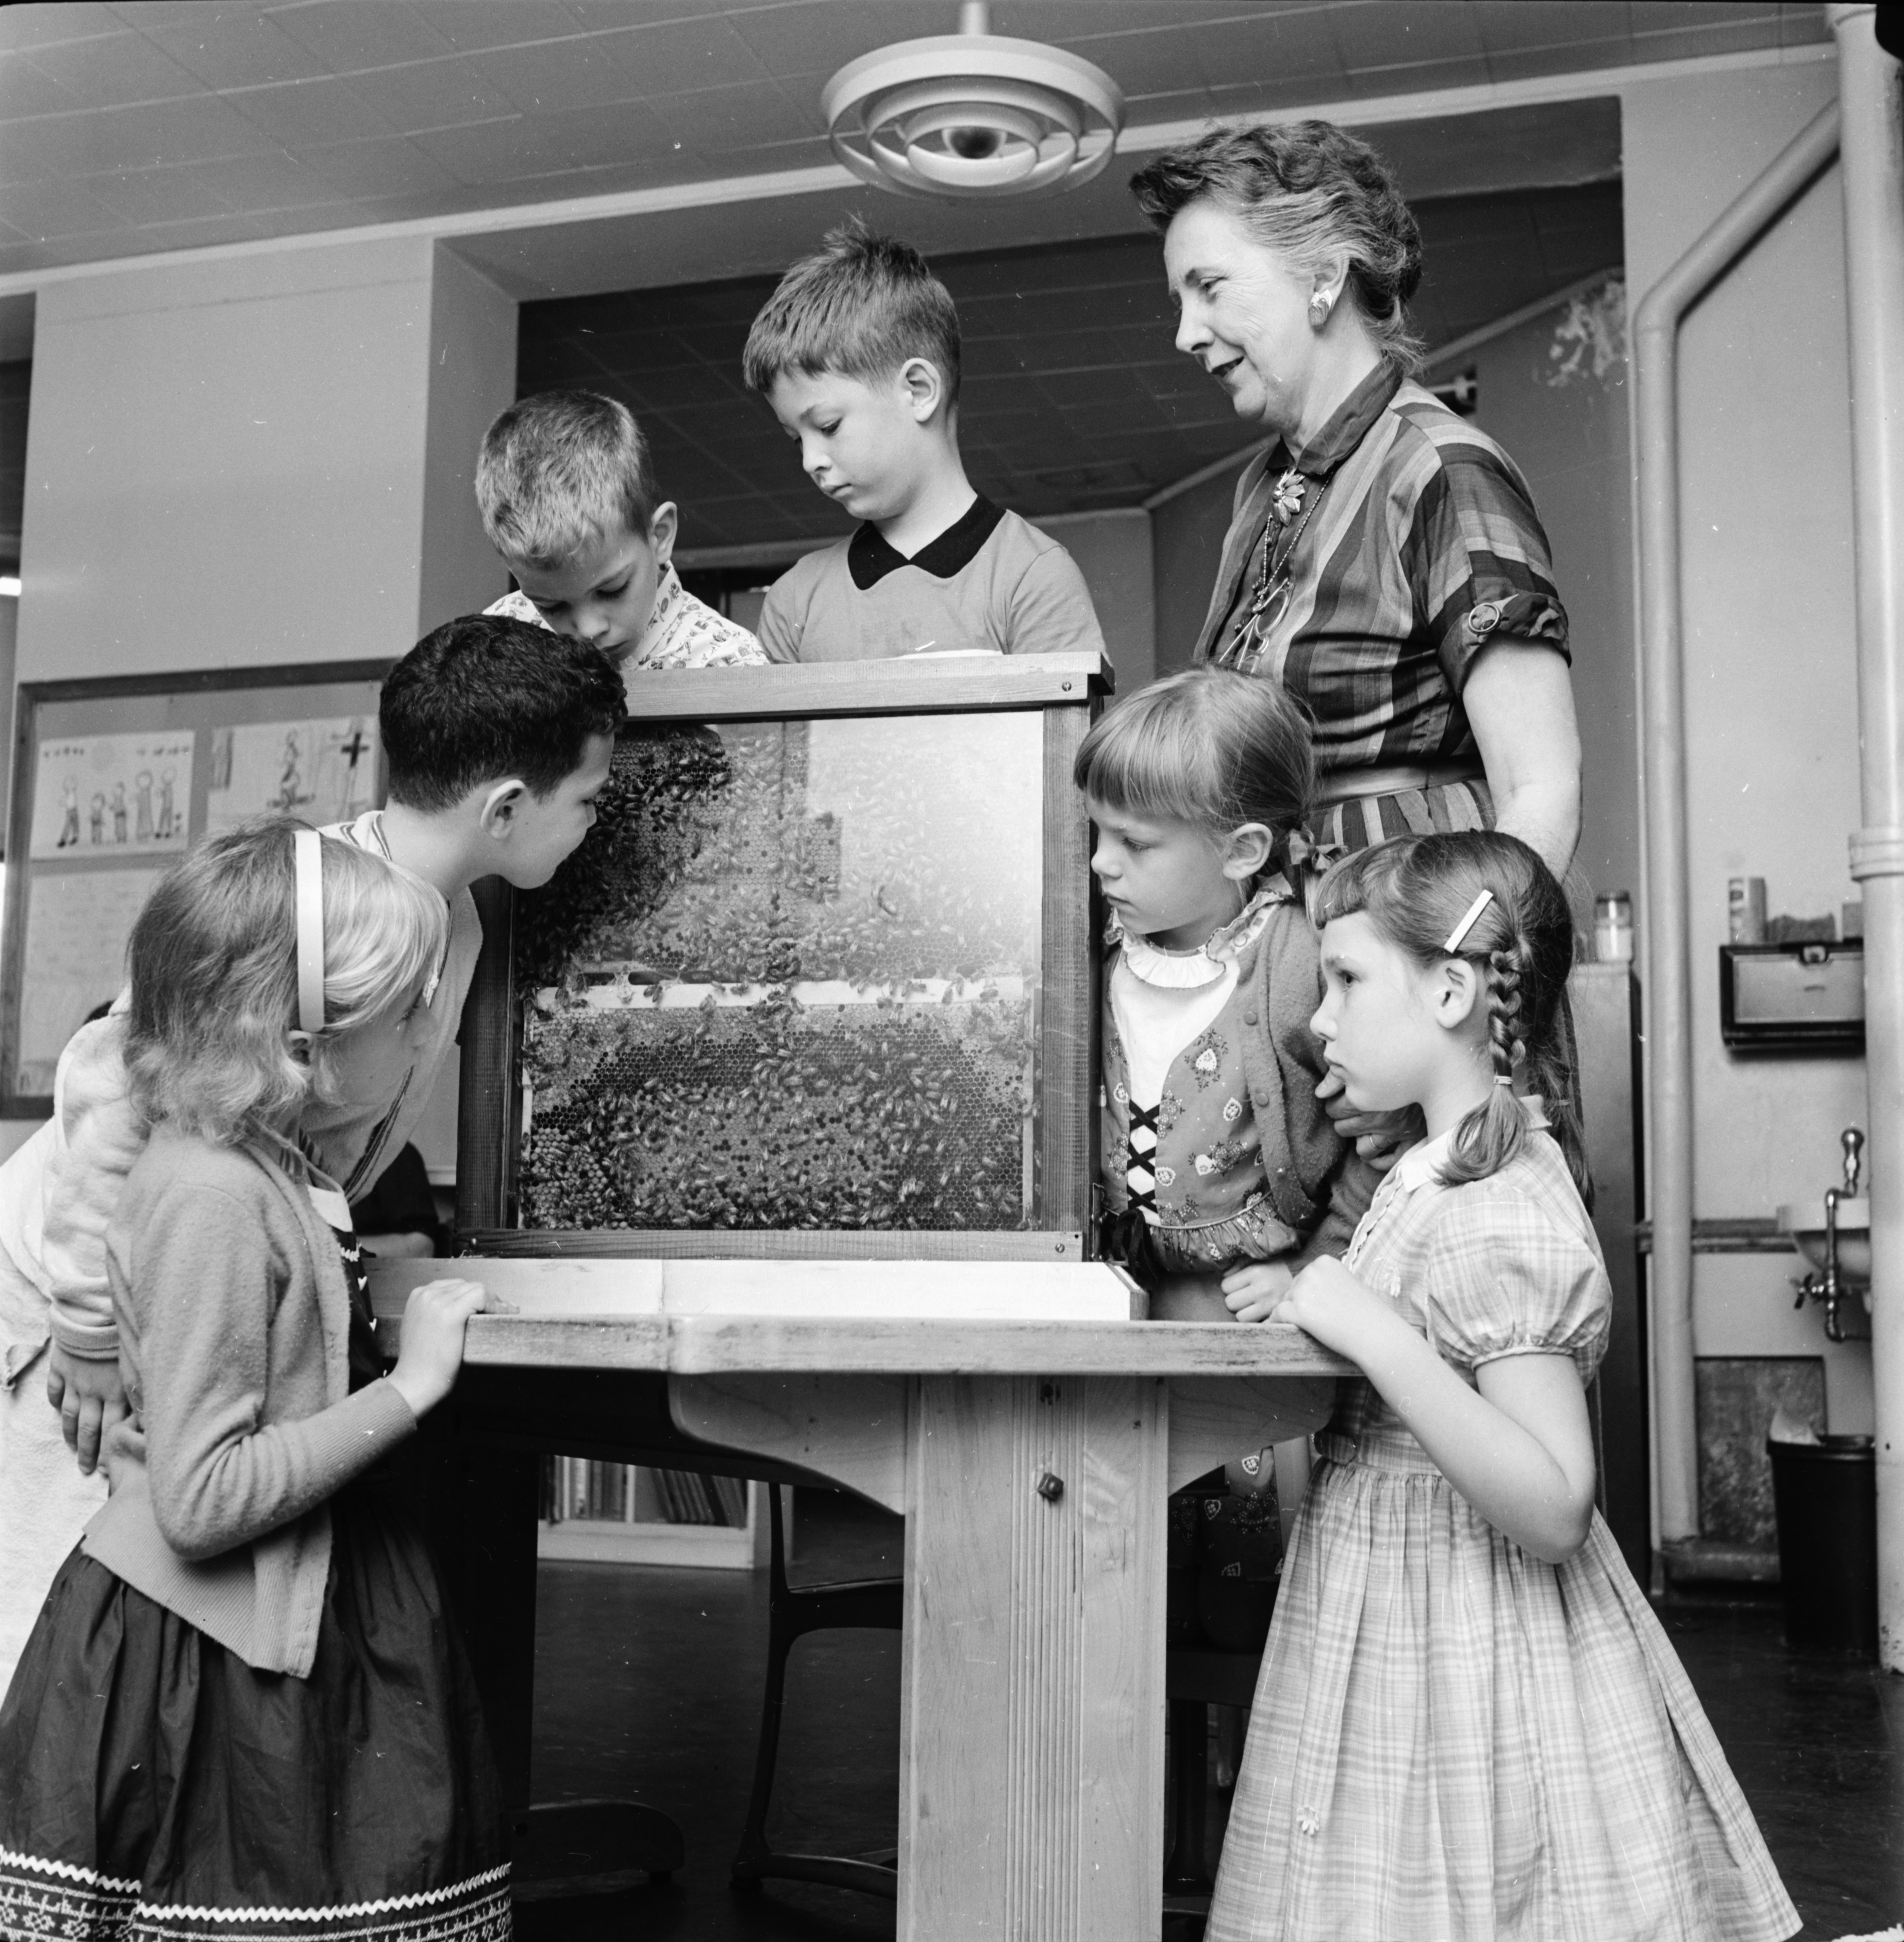 Burns Park Elementary Students Study Bees in the Classroom, June 1960 image